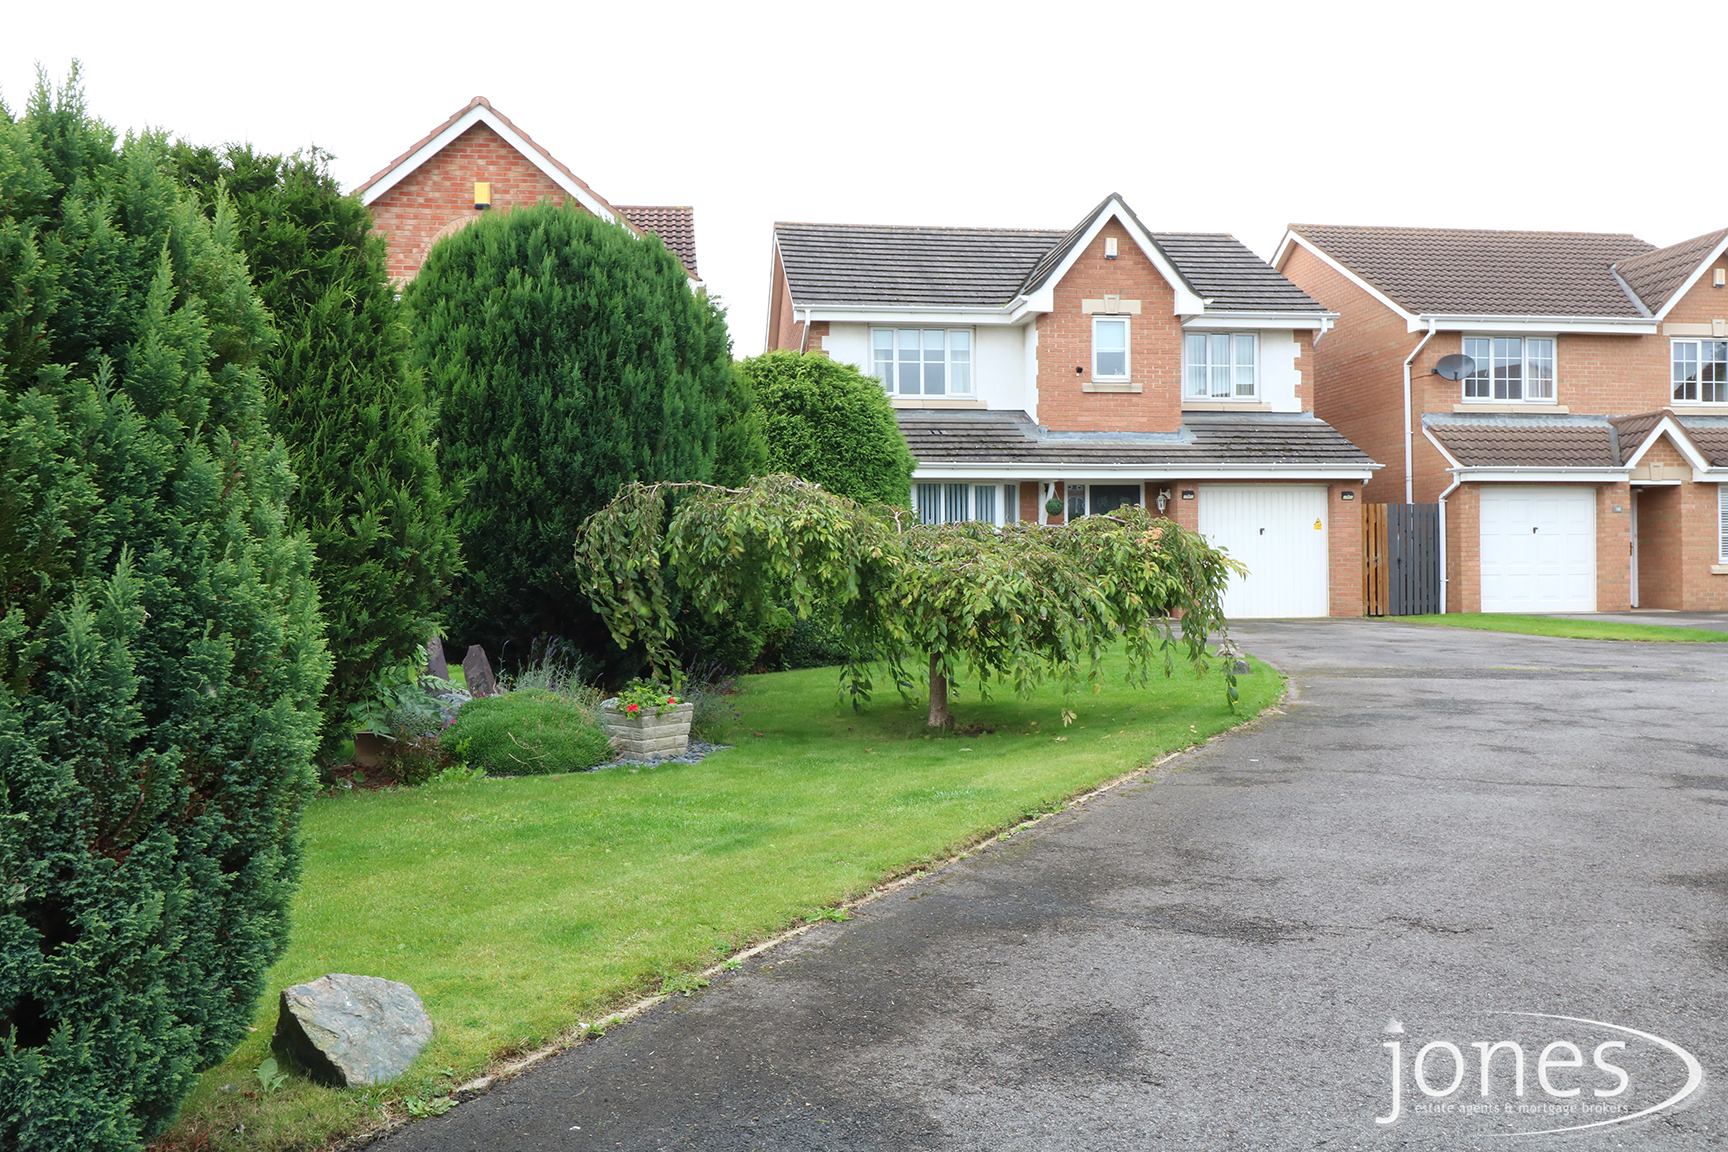 Home for Sale Let - Photo 20 West End Way , Low Hartburn,Stockton on Tees,TS18 3UA